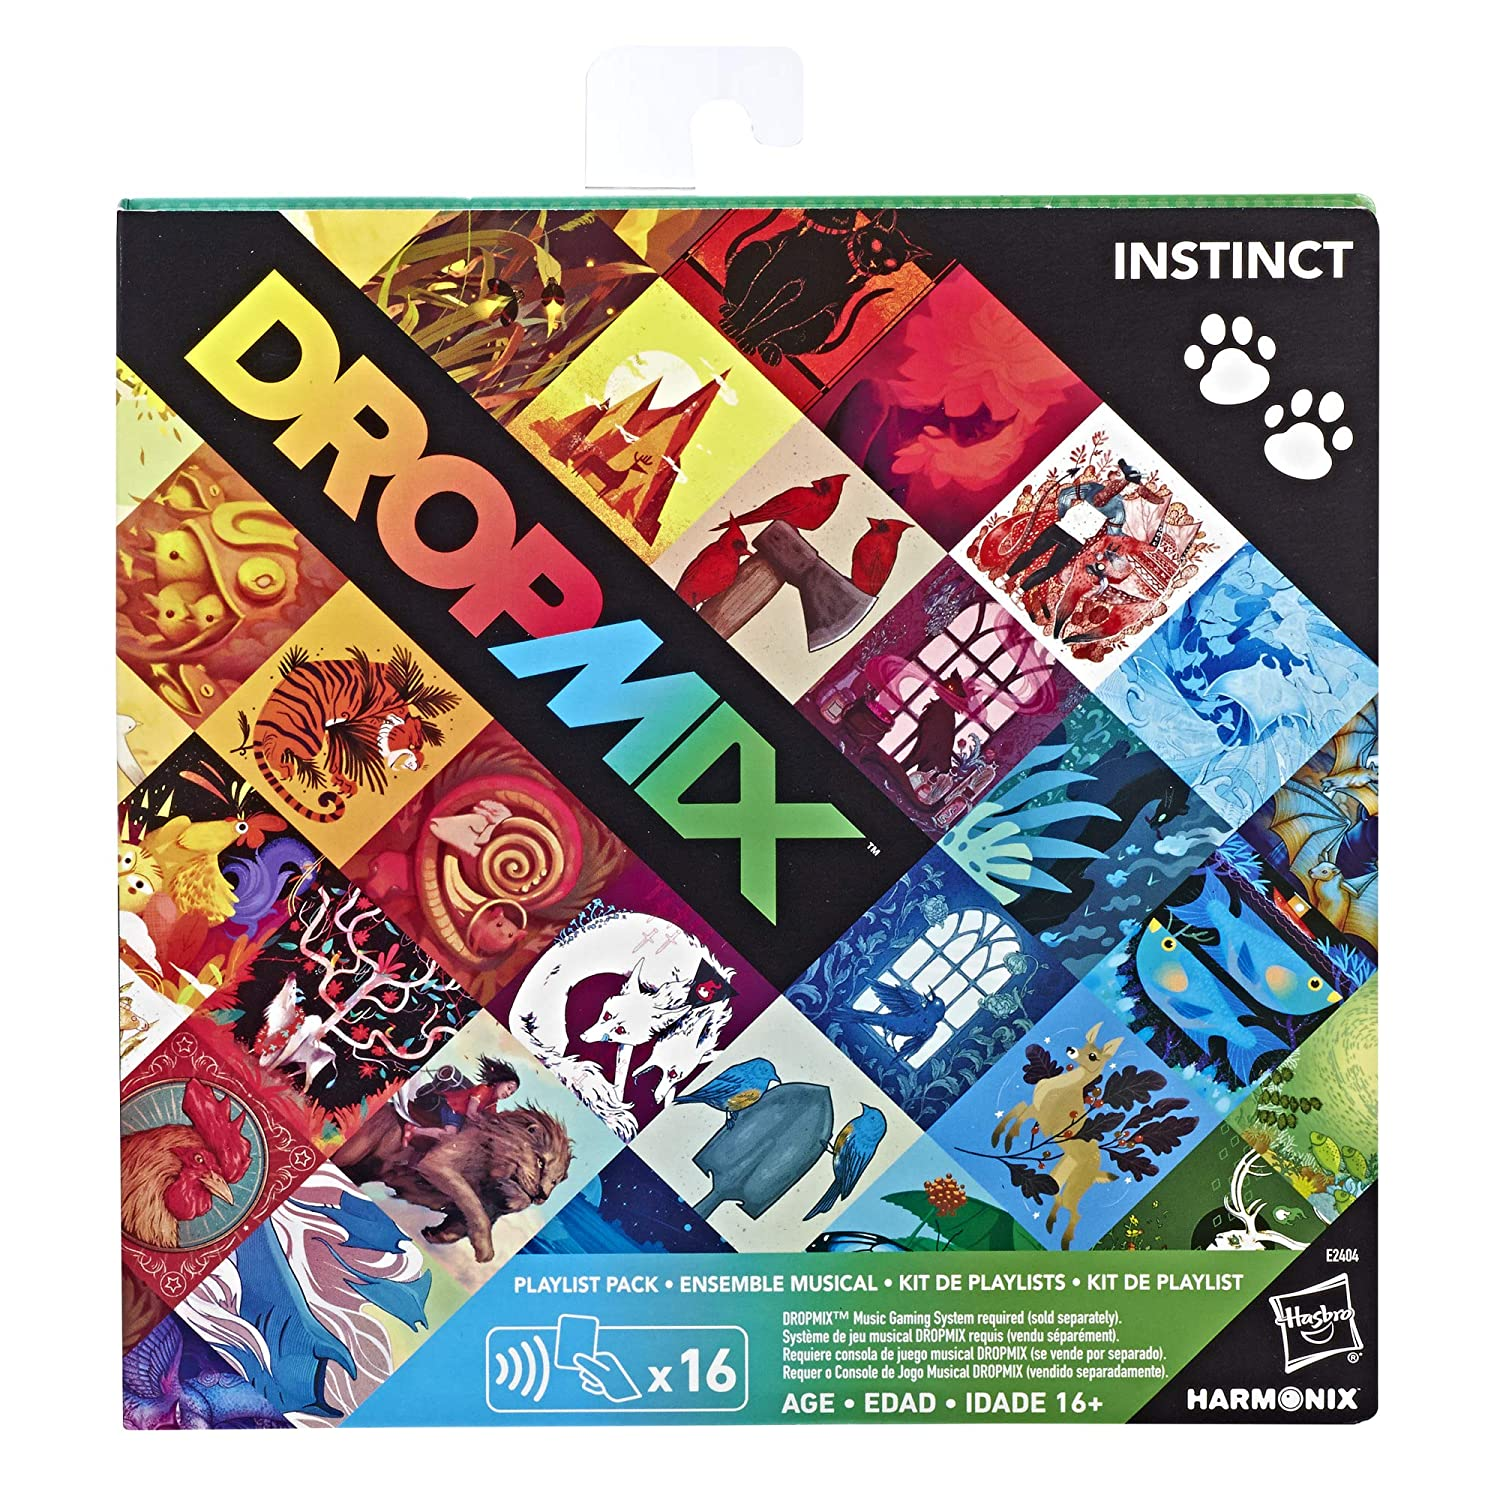 Hasbro Dropmix Playlist Pack (Instinct) Expansion for Music Mixing Board & Card Game